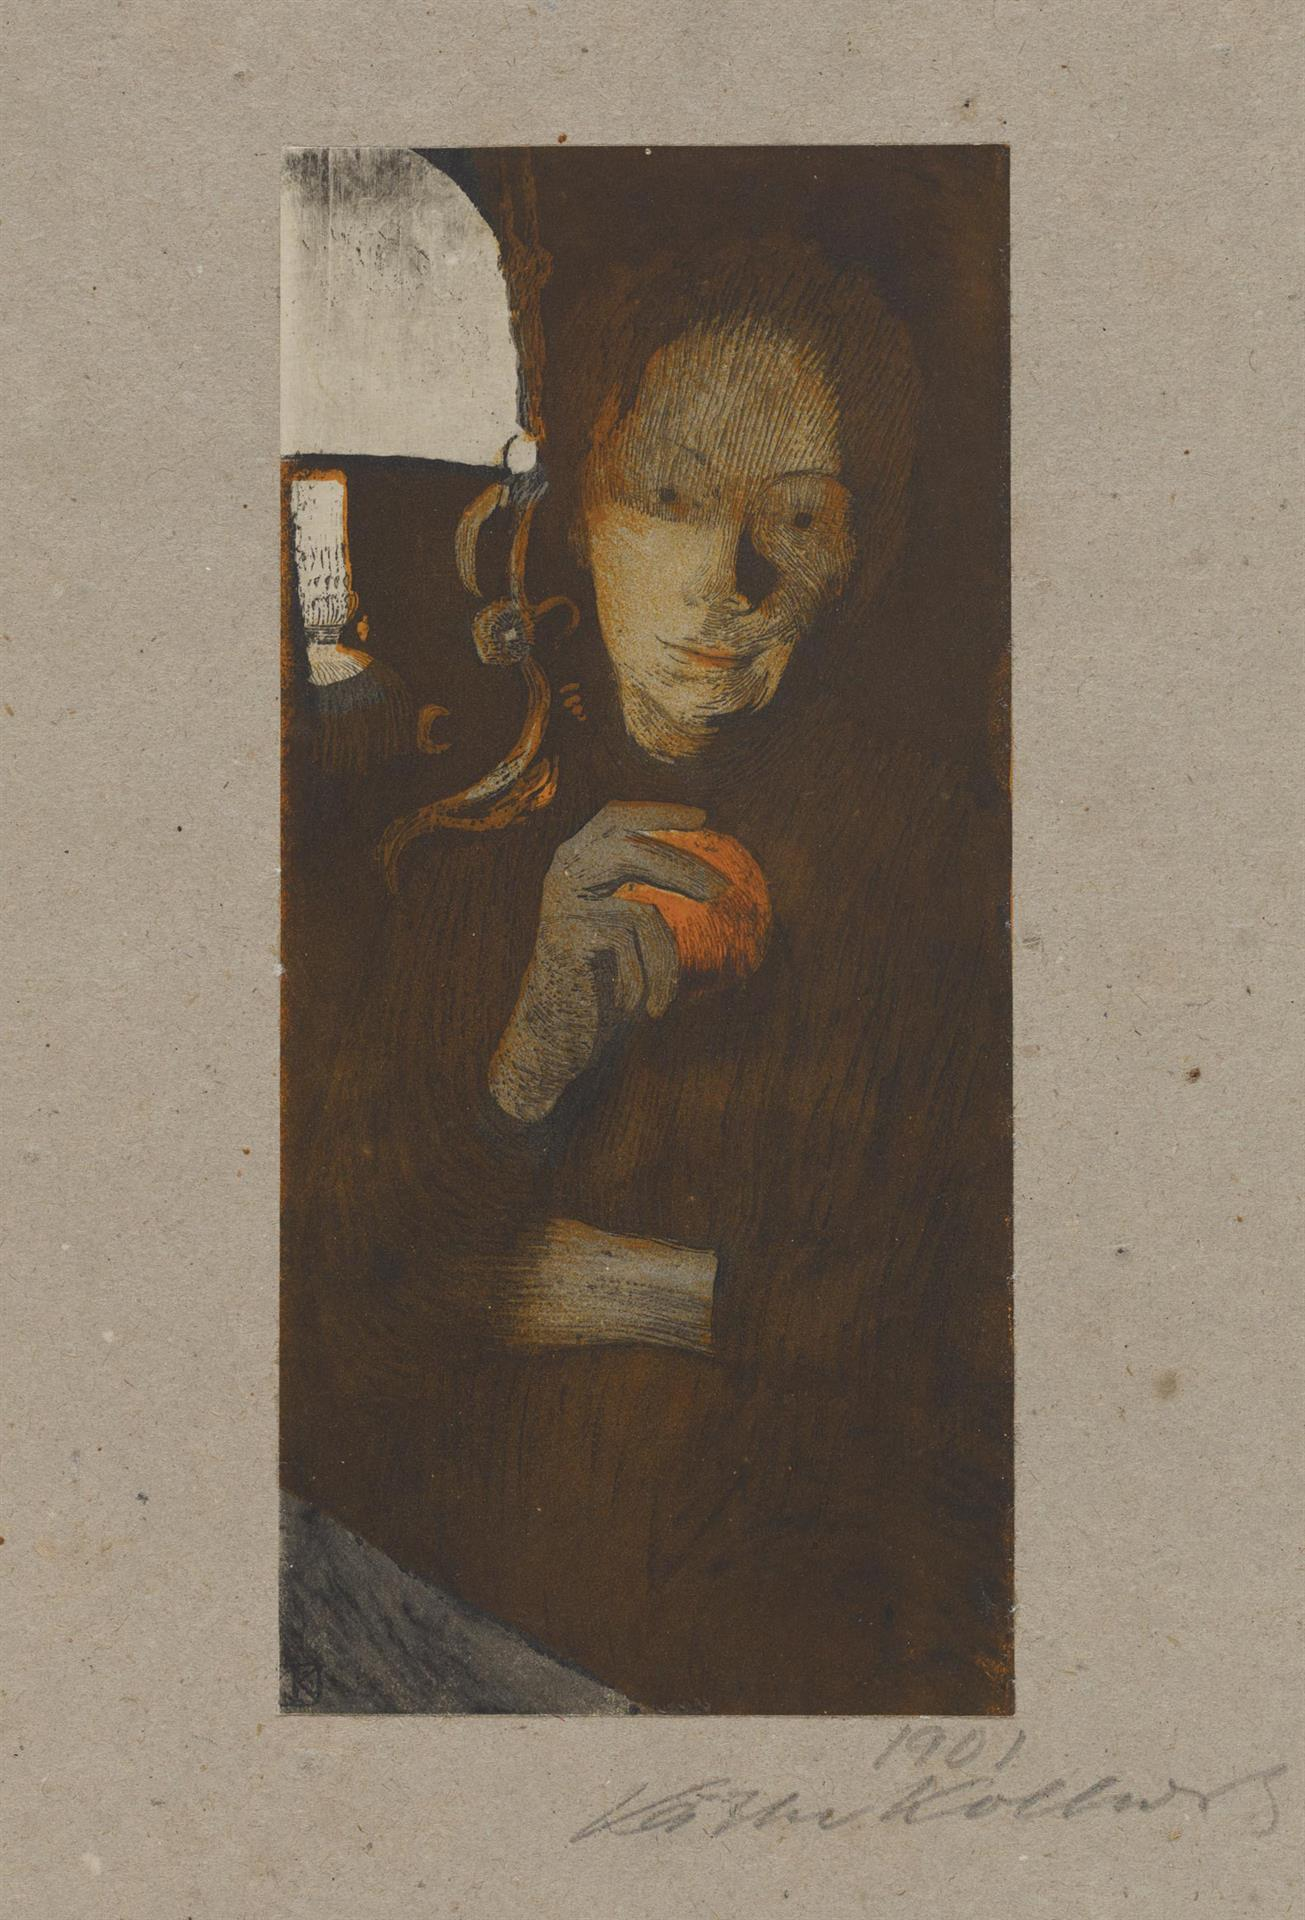 Käthe Kollwitz, Woman with Orange, 1901, brush lithograph with colouring stone in orange, etching (aquatint, reservage and drypoint) slightly edited with charcoal, cream-coloured paper laid on grey, blotter-like paper, Kn 56 II 2, Cologne Kollwitz Collection © Käthe Kollwitz Museum Köln